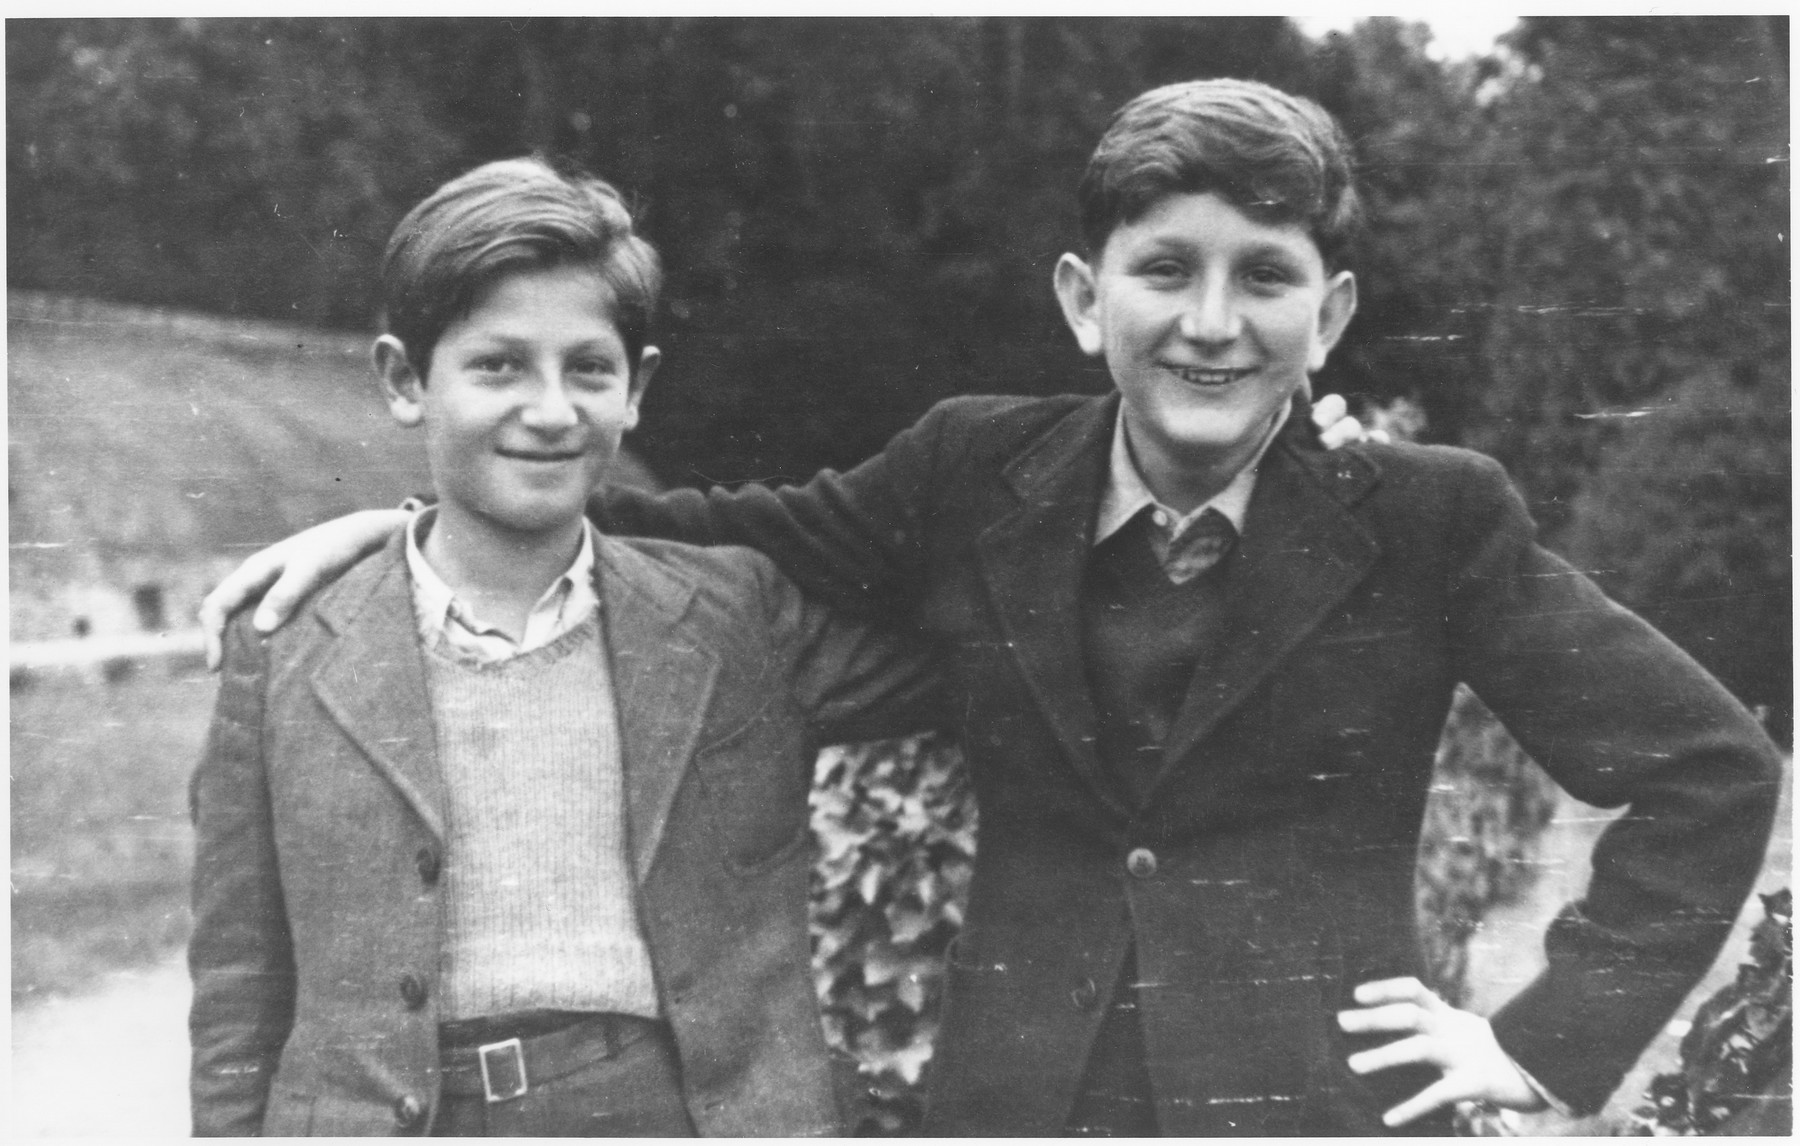 Ari Rosenberg (left) and Ivar Segalowitz (right) pose outside during the time they were residents of the Champigny children's home.